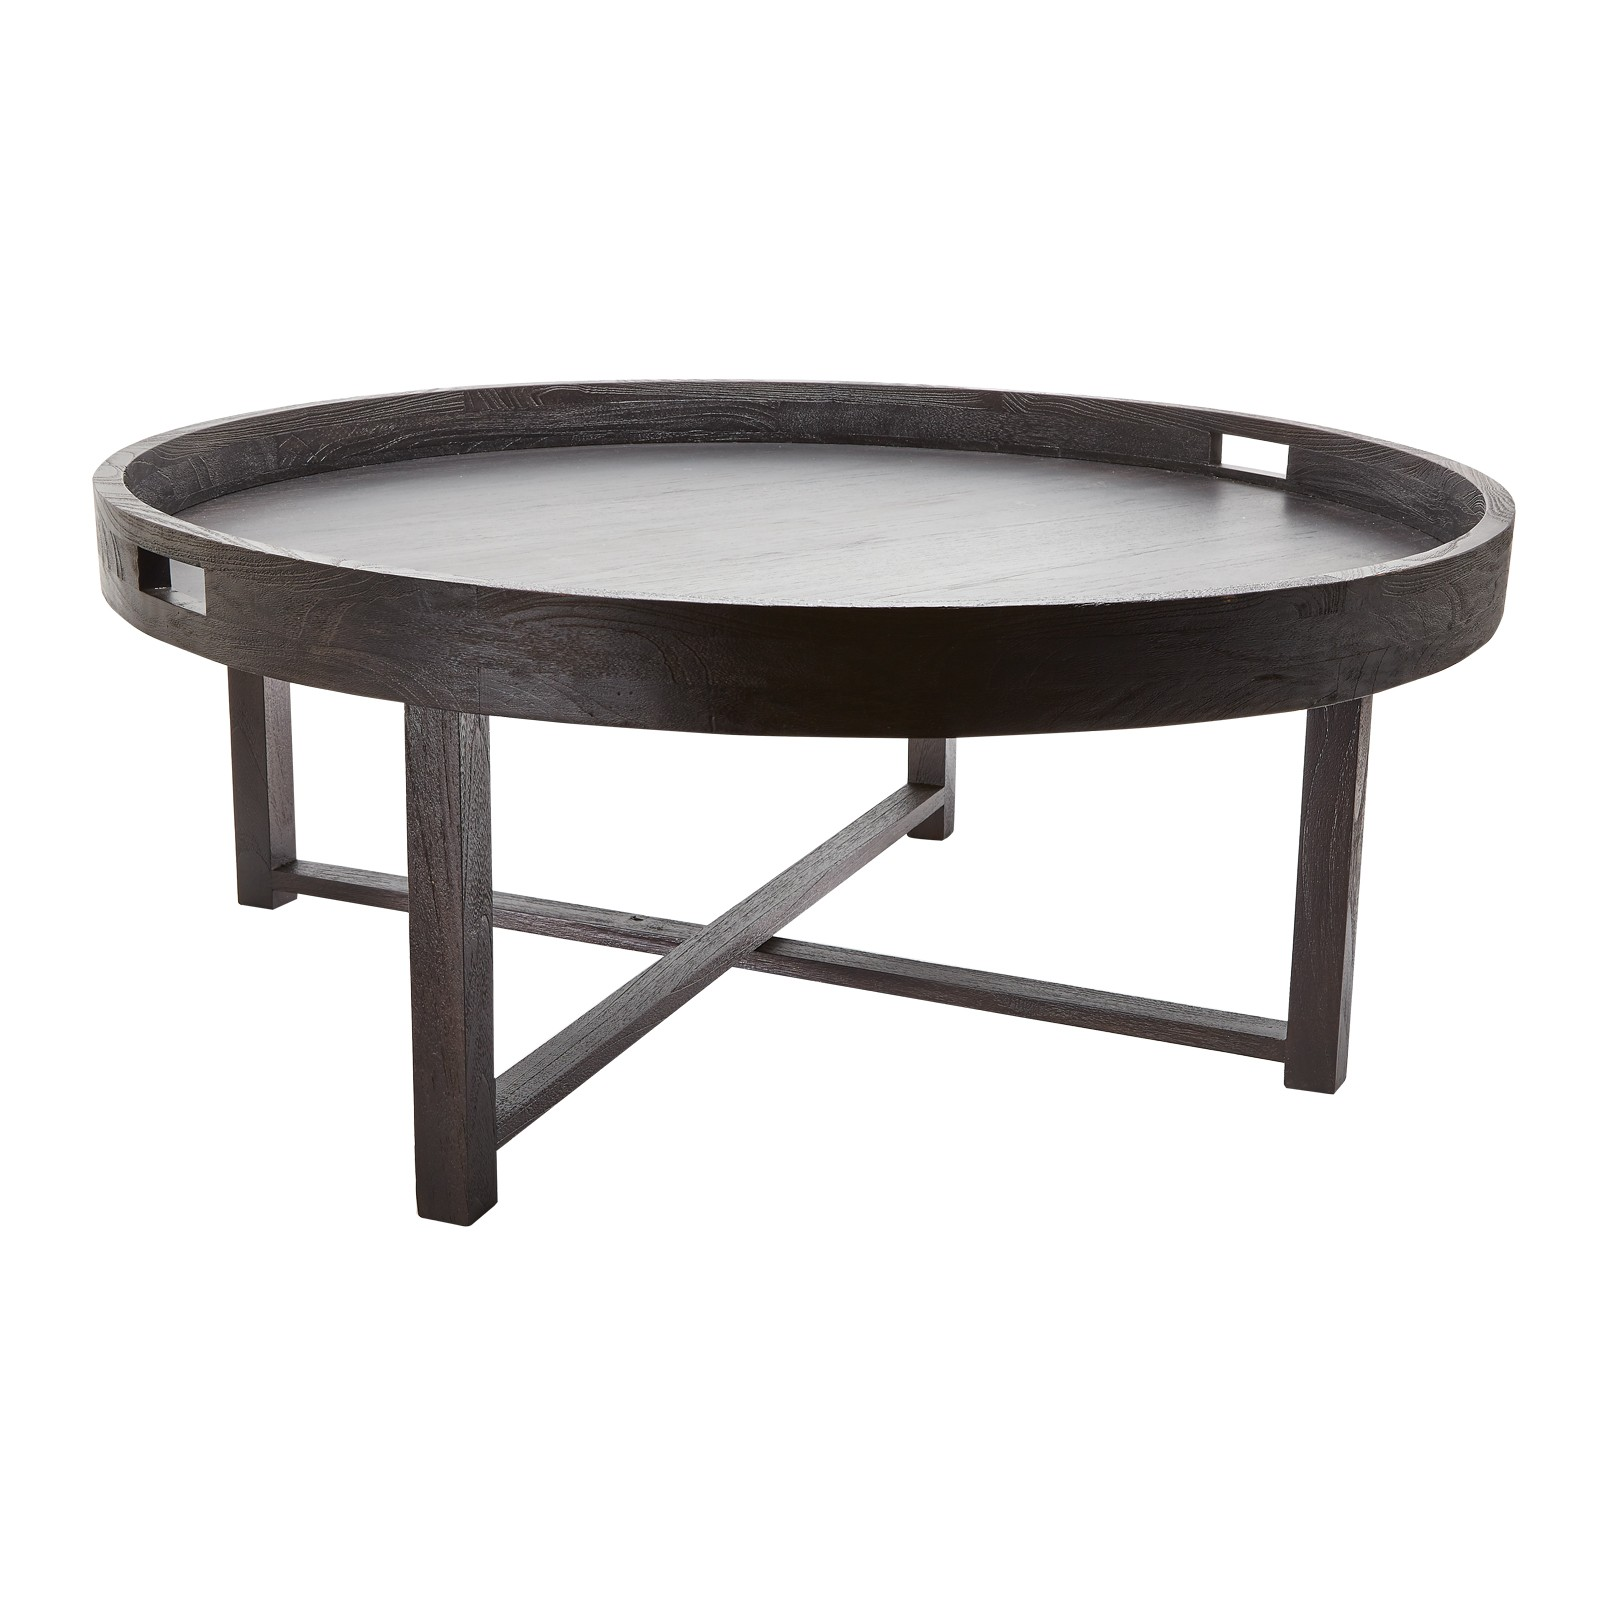 outdoor coffee table round decor trendy metal side folding wood cocktail turquoise furniture accent behind couch sofa height small thin corner wall clock dining and chairs